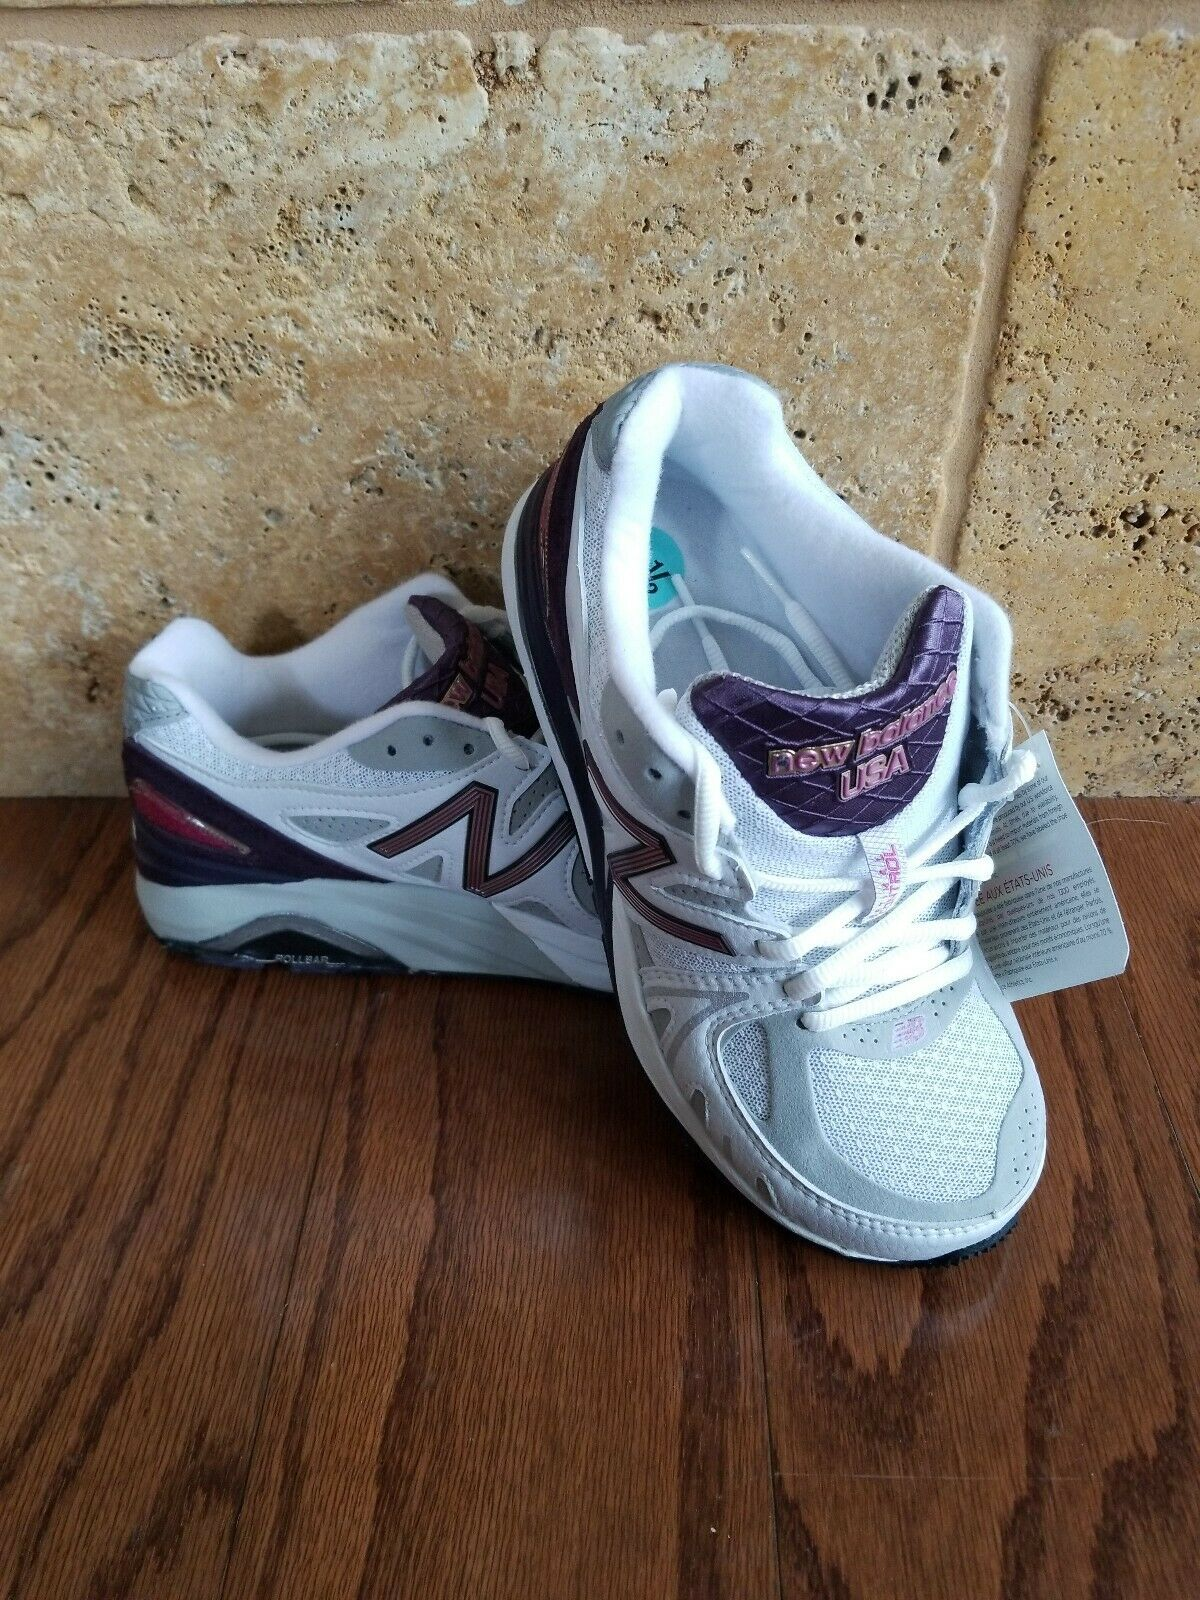 NEW New Balance W1540WP1 Made in USA Running White Purple Women shoes SZ 5.5 D